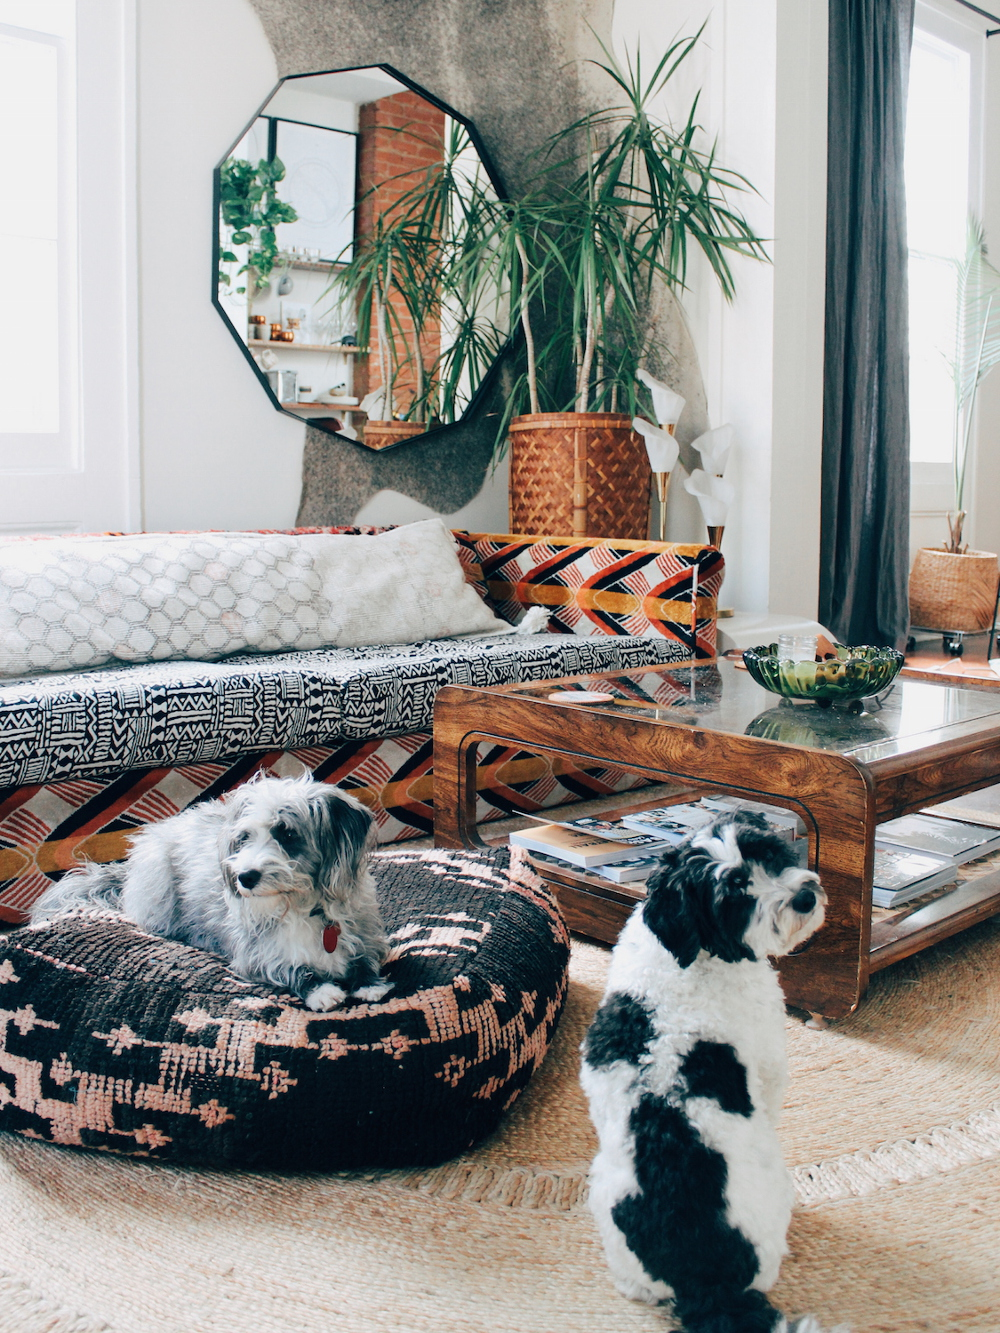 Spotted: Two Boho Pups in New Orleans